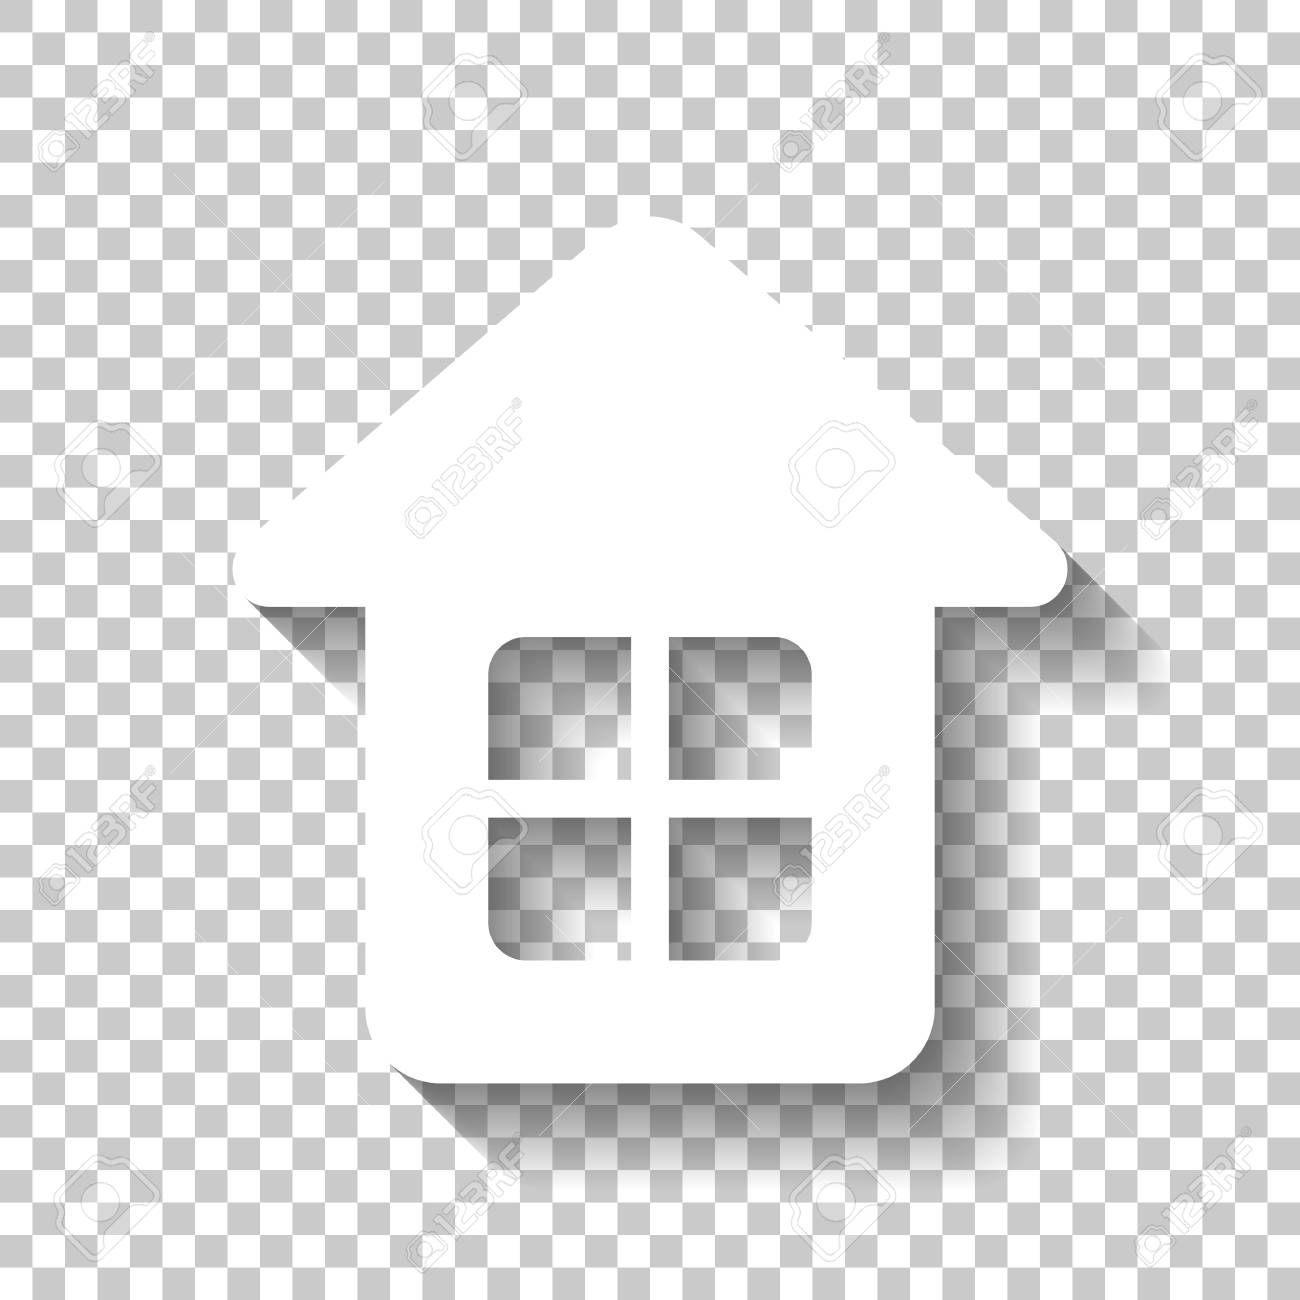 Simple House Icon White Icon With Shadow On Transparent Background Affiliate Icon House Simple White Home Icon Simple House Transparent Background